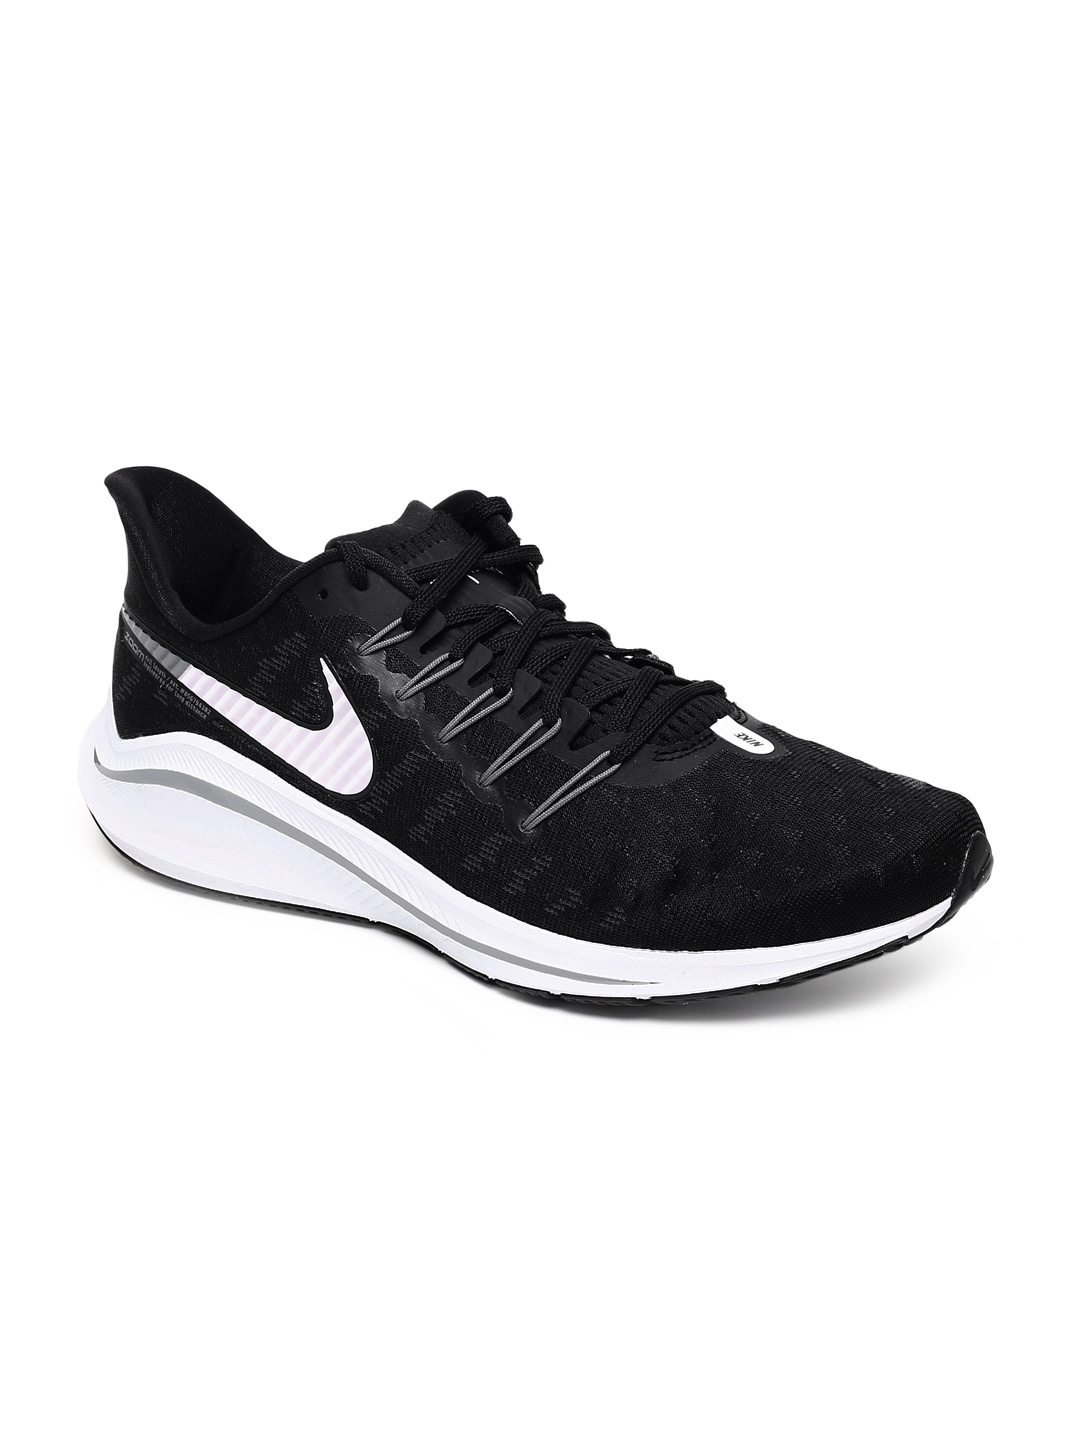 bas prix 14dfa 9fa20 Nike Men Black Air Zoom Vomero 14 Running Shoes